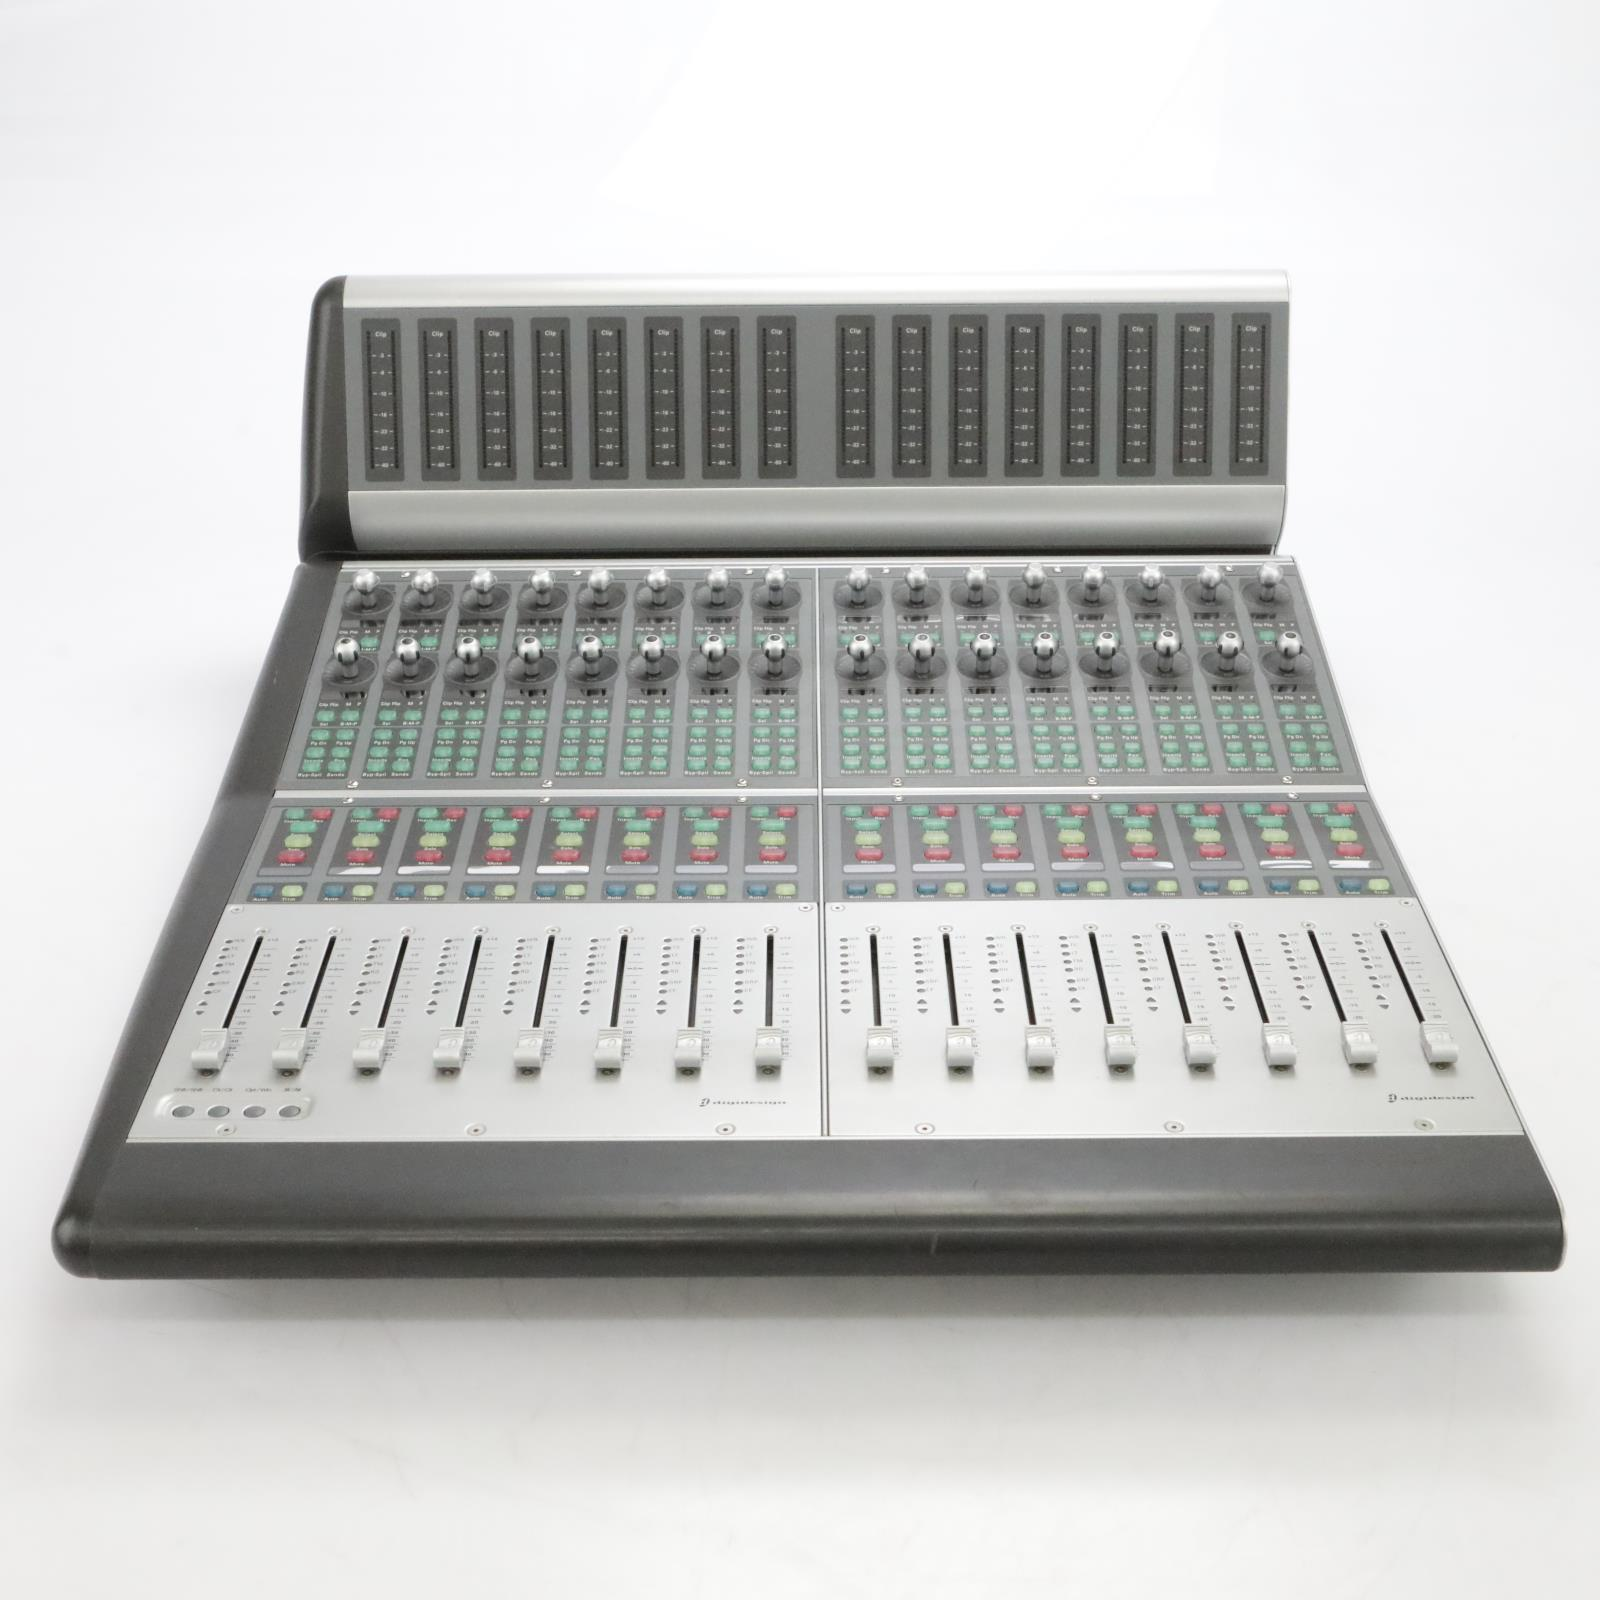 Digidesign D-Command Fader 16-Channel Expansion for D-Command Mixer #44356